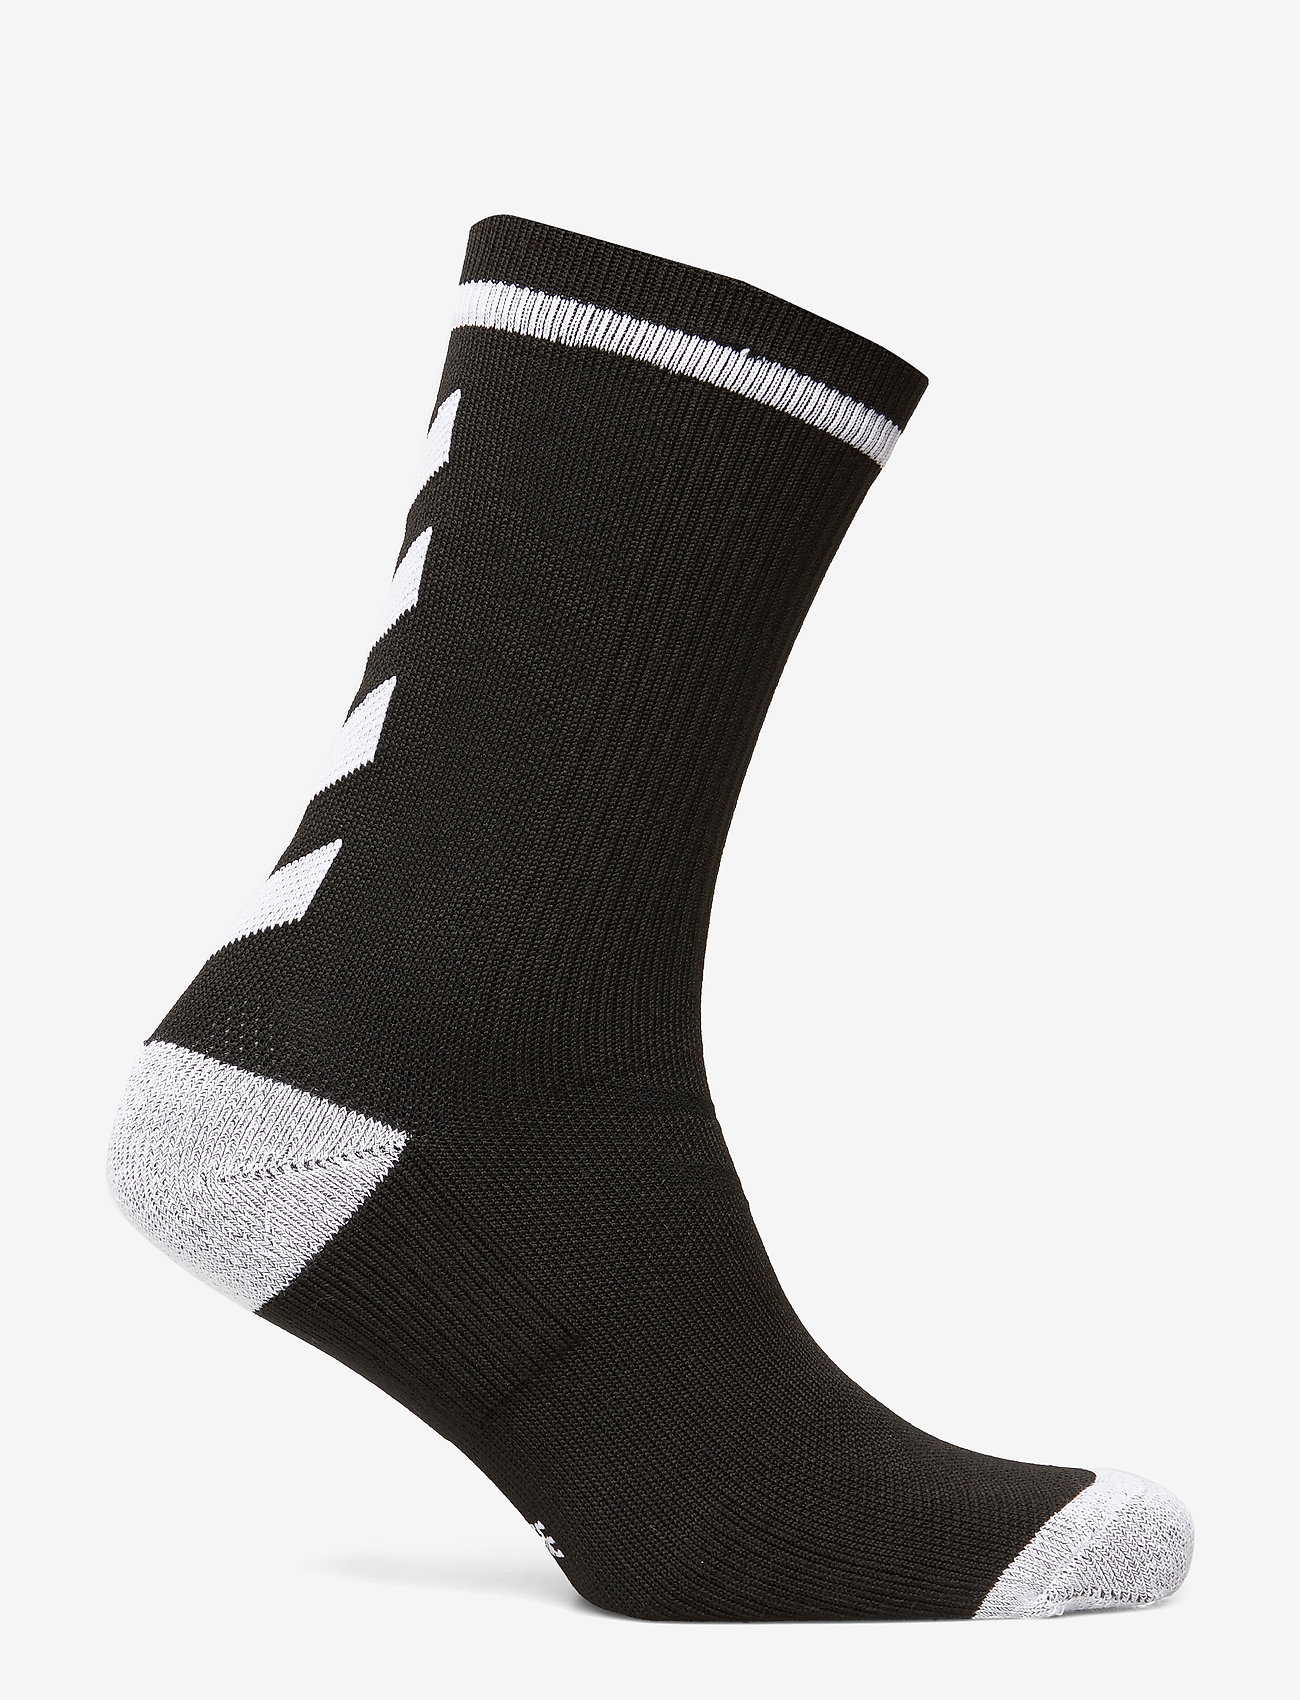 Hummel - ELITE INDOOR SOCK LOW - fodboldsokker - black/white - 1